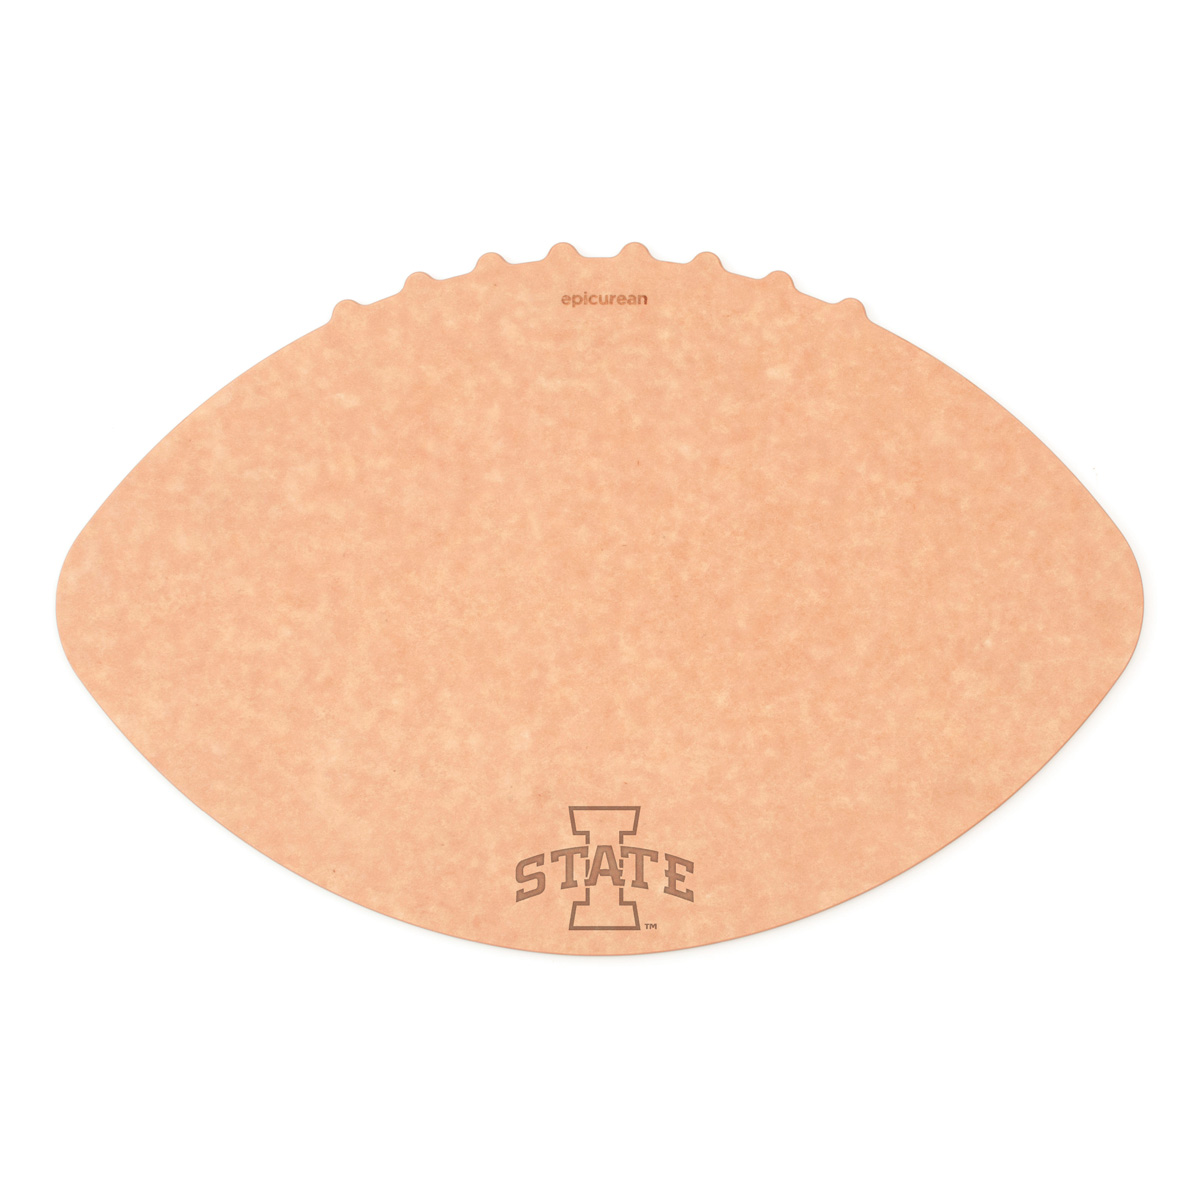 Epicurean Iowa State University 16 x 10.5 Inch Football Cutting and Serving Board